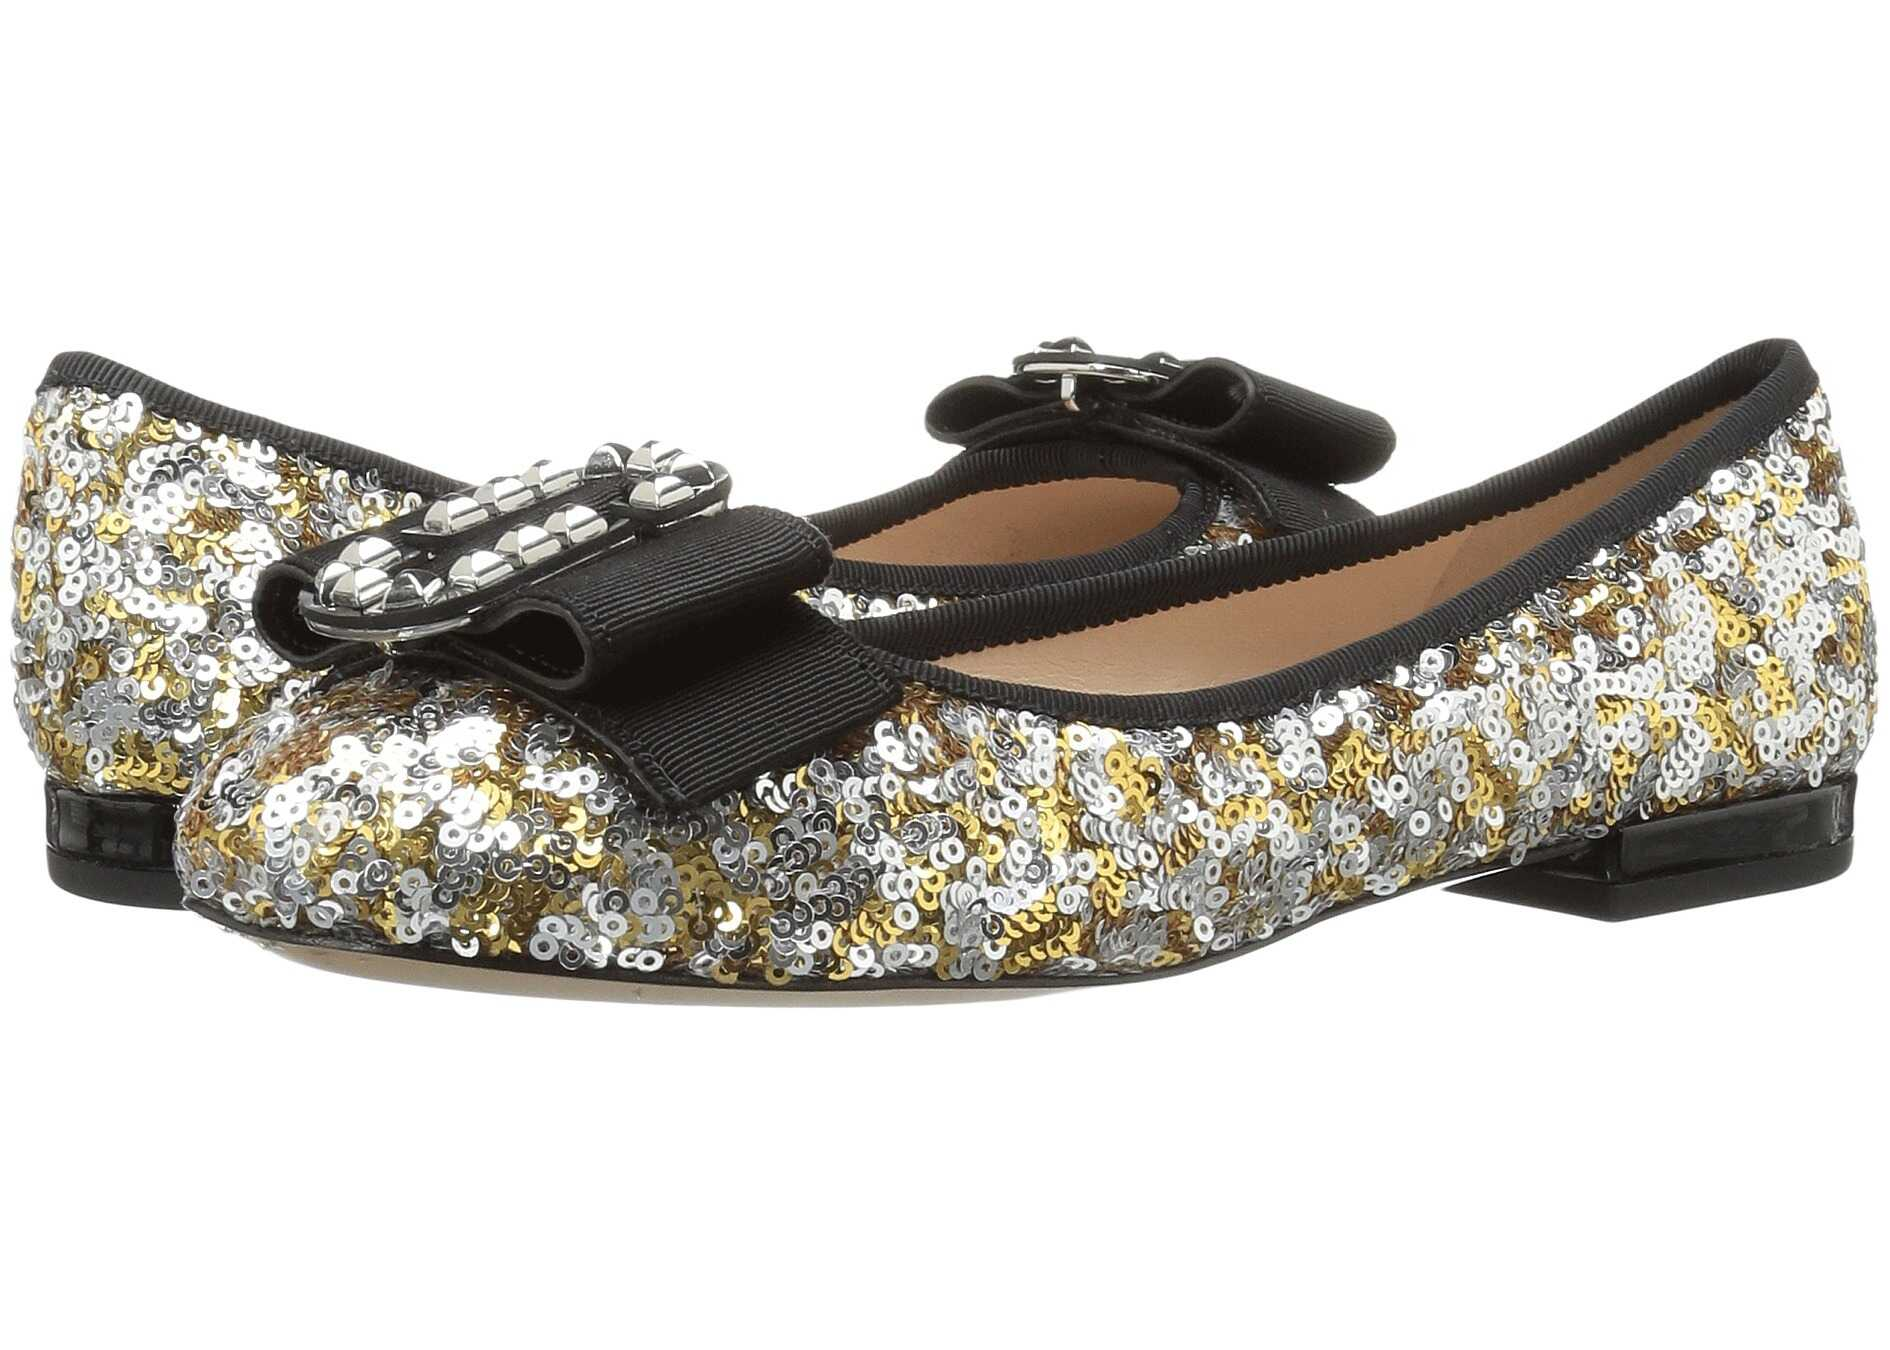 Marc Jacobs Interlock Round Toe Ballerina Gold/Silver